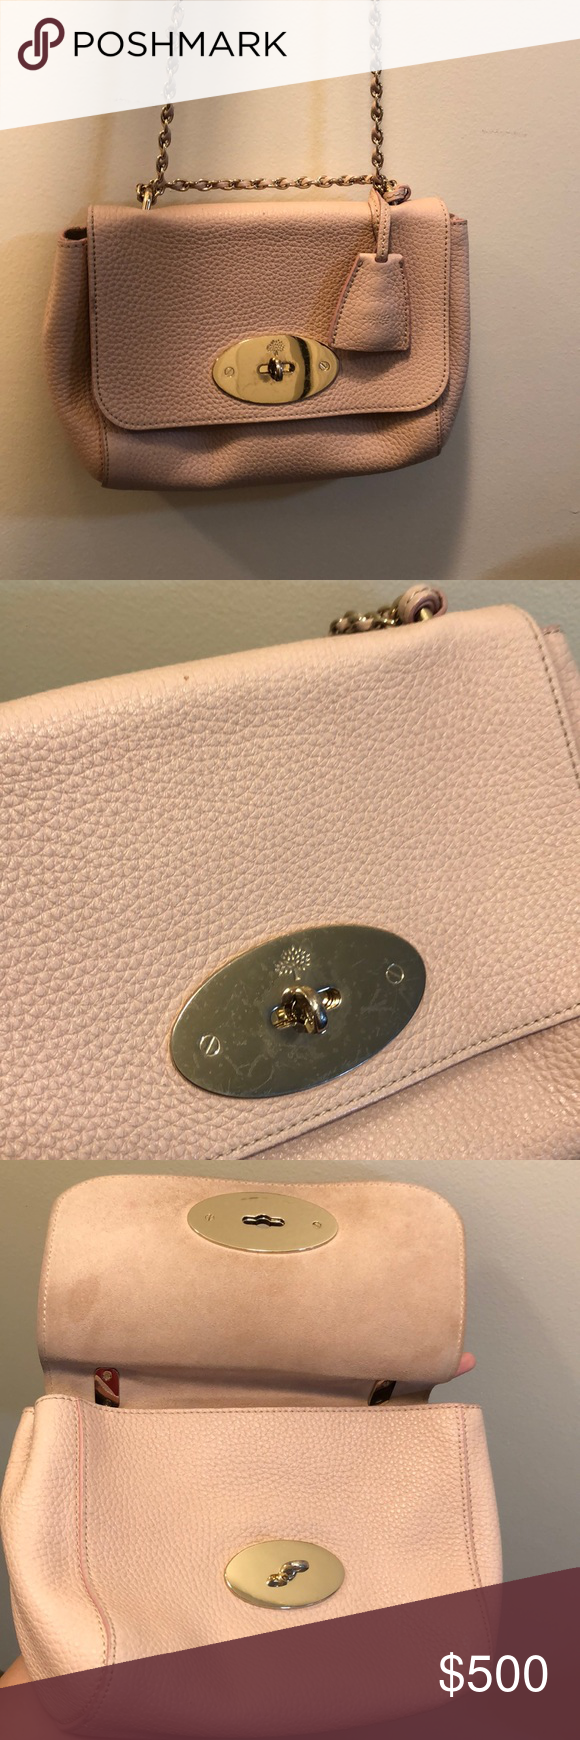 Mulberry Pink Lily Very clean. Authentic. No box or dust bag. Can be worn in two ways: cross body and tote. Suede inside. Nicely worn as the pictures! Price is firm. Mulberry Bags Crossbody Bags #mulberrybag